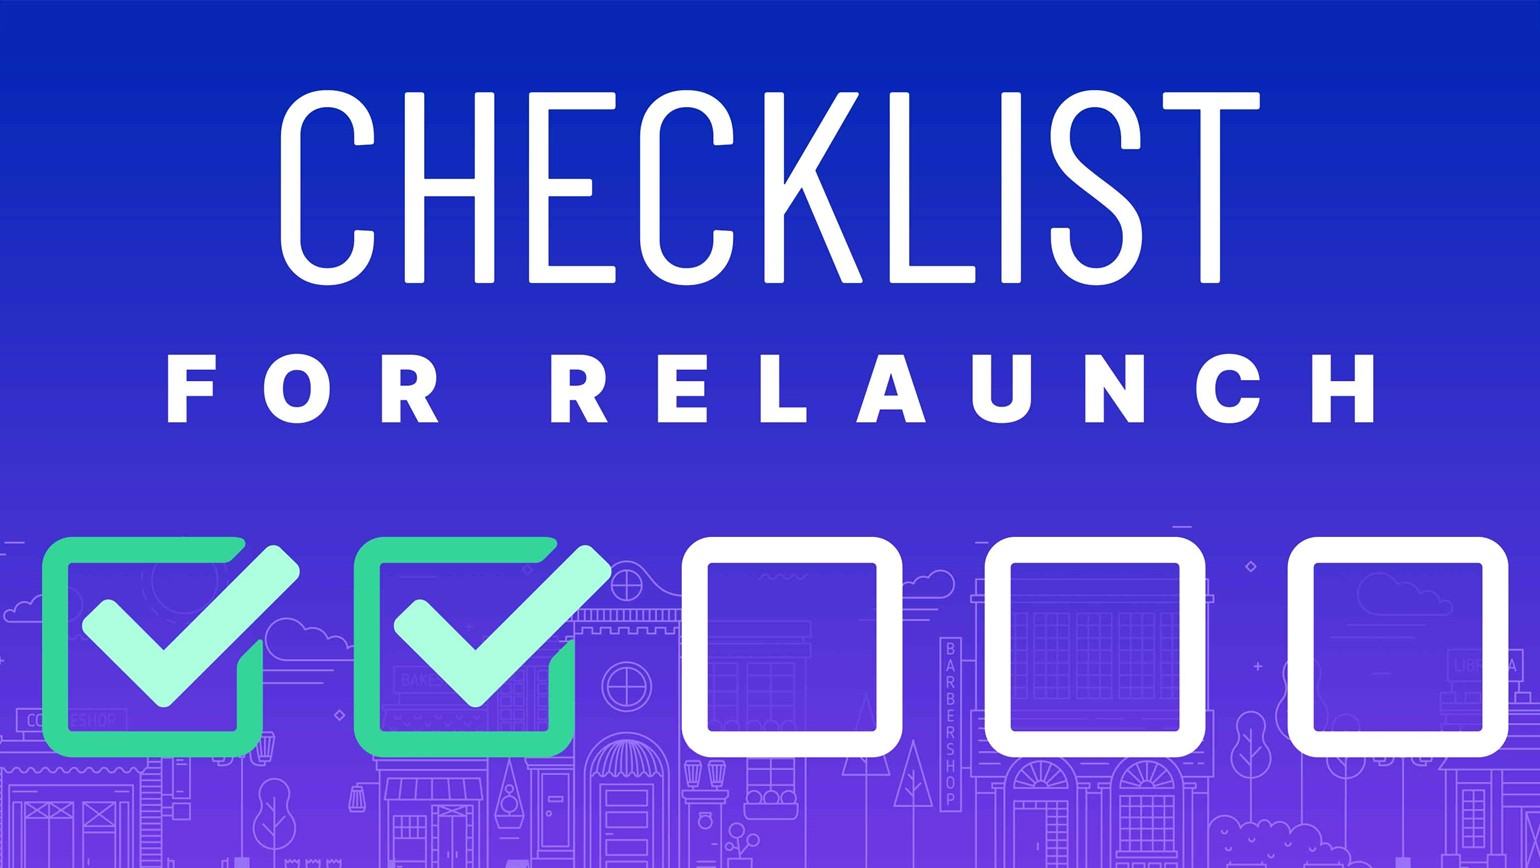 Checklist for Relaunch